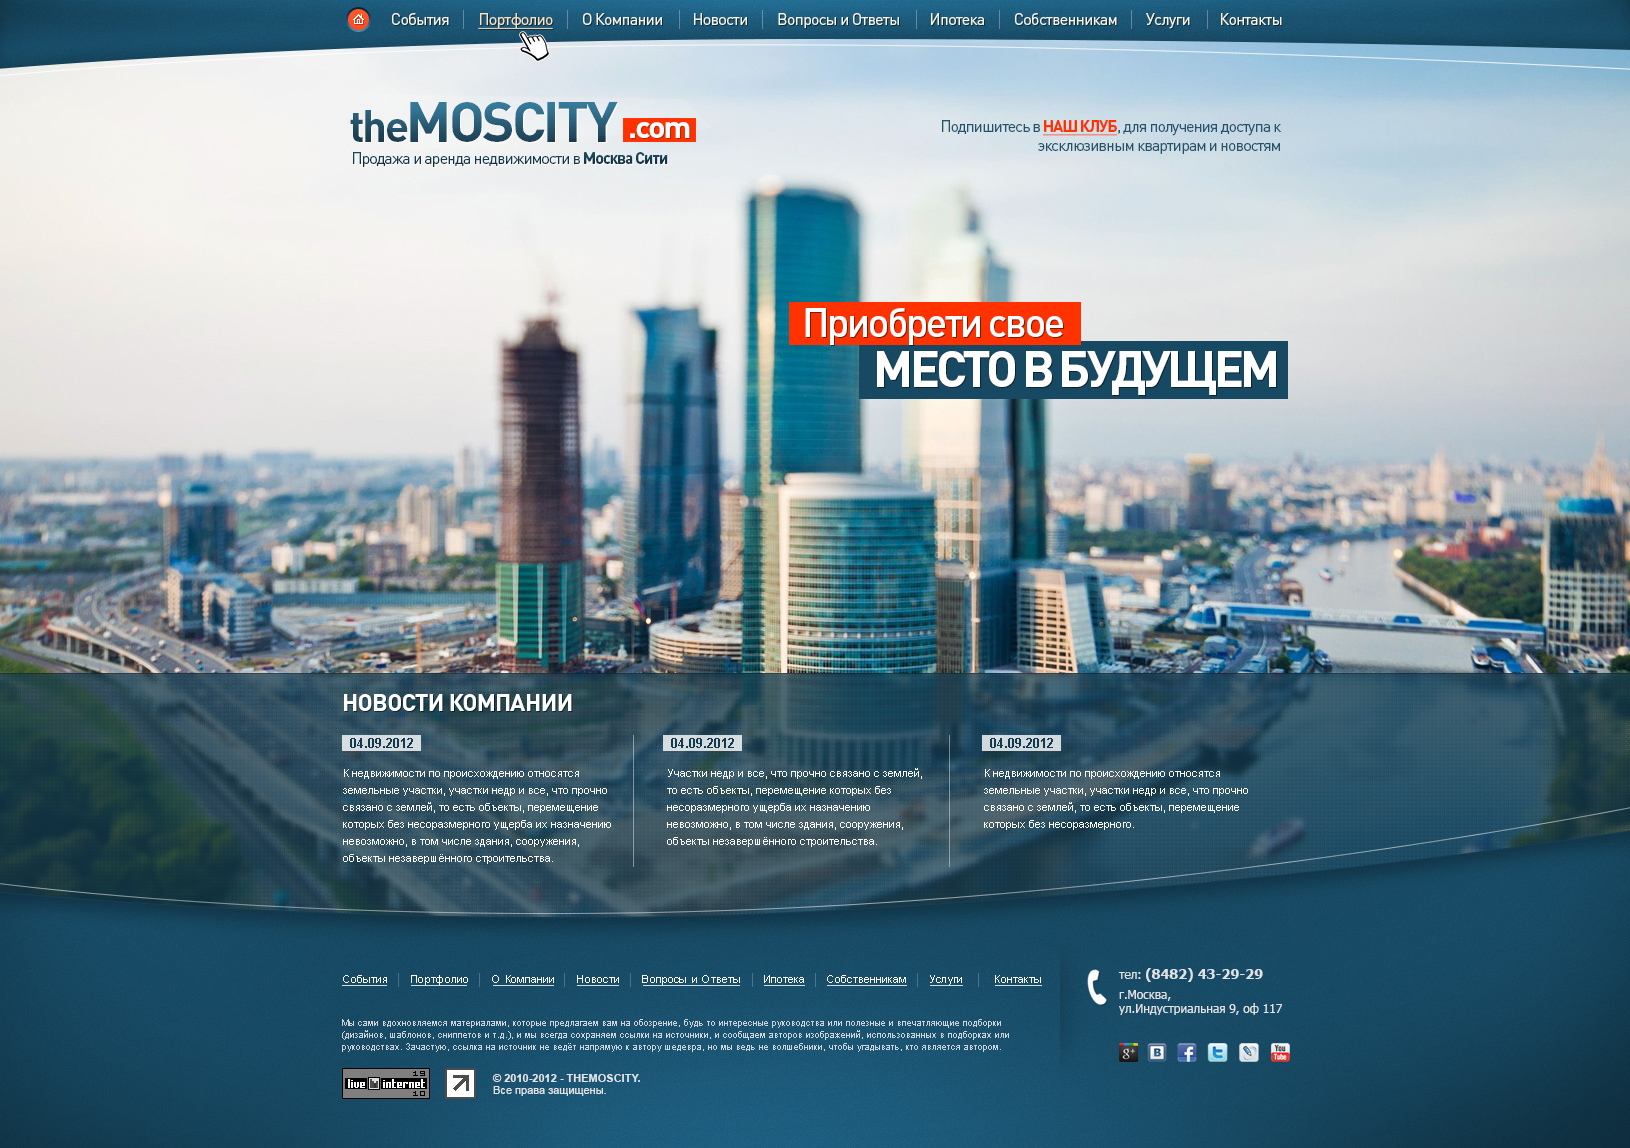 The Moscow City v.2